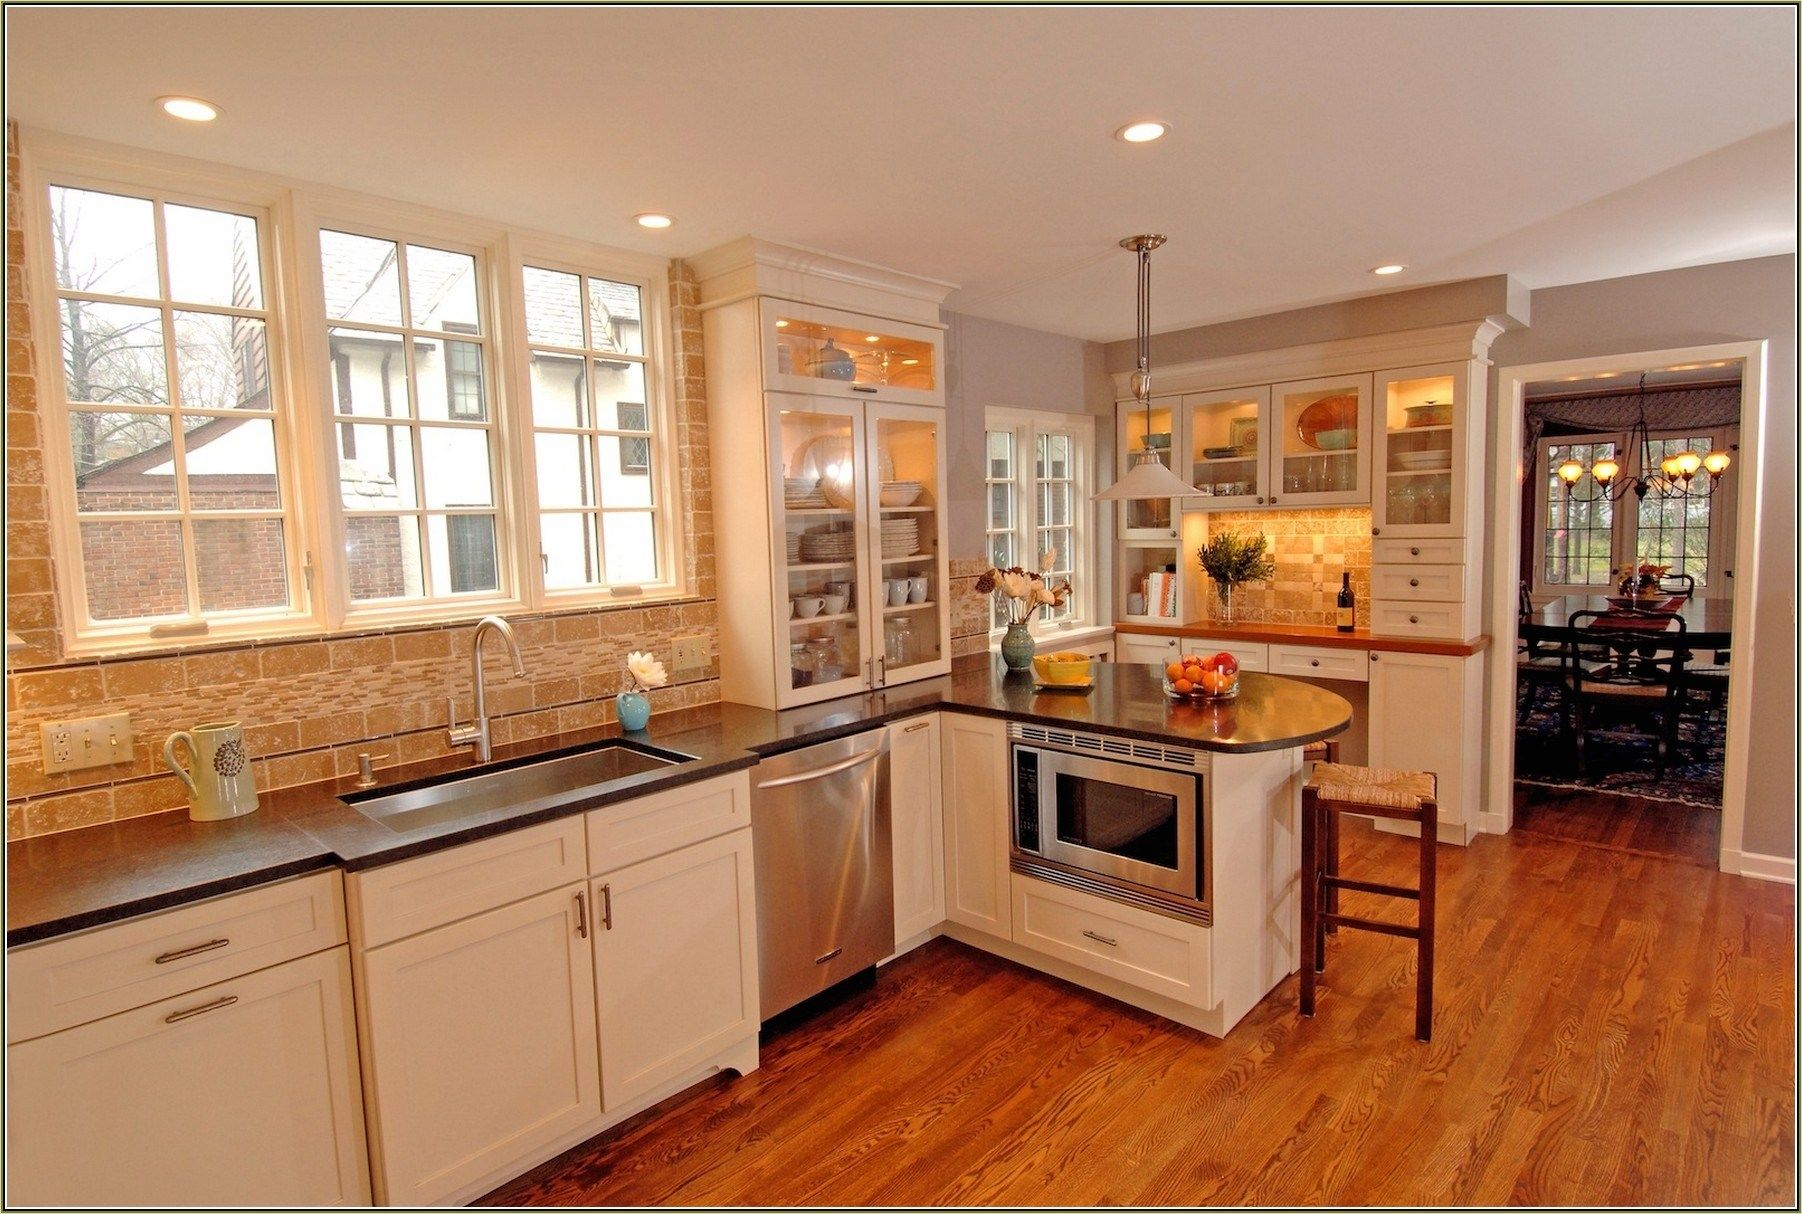 Kitchen With Maple Cabinets Color Ideas 97 Kitchen Kitchen Paint Color Ideas Maple Cabin Kitchen Remodel Design Maple Cabinets Kitchen Cabinets And Countertops